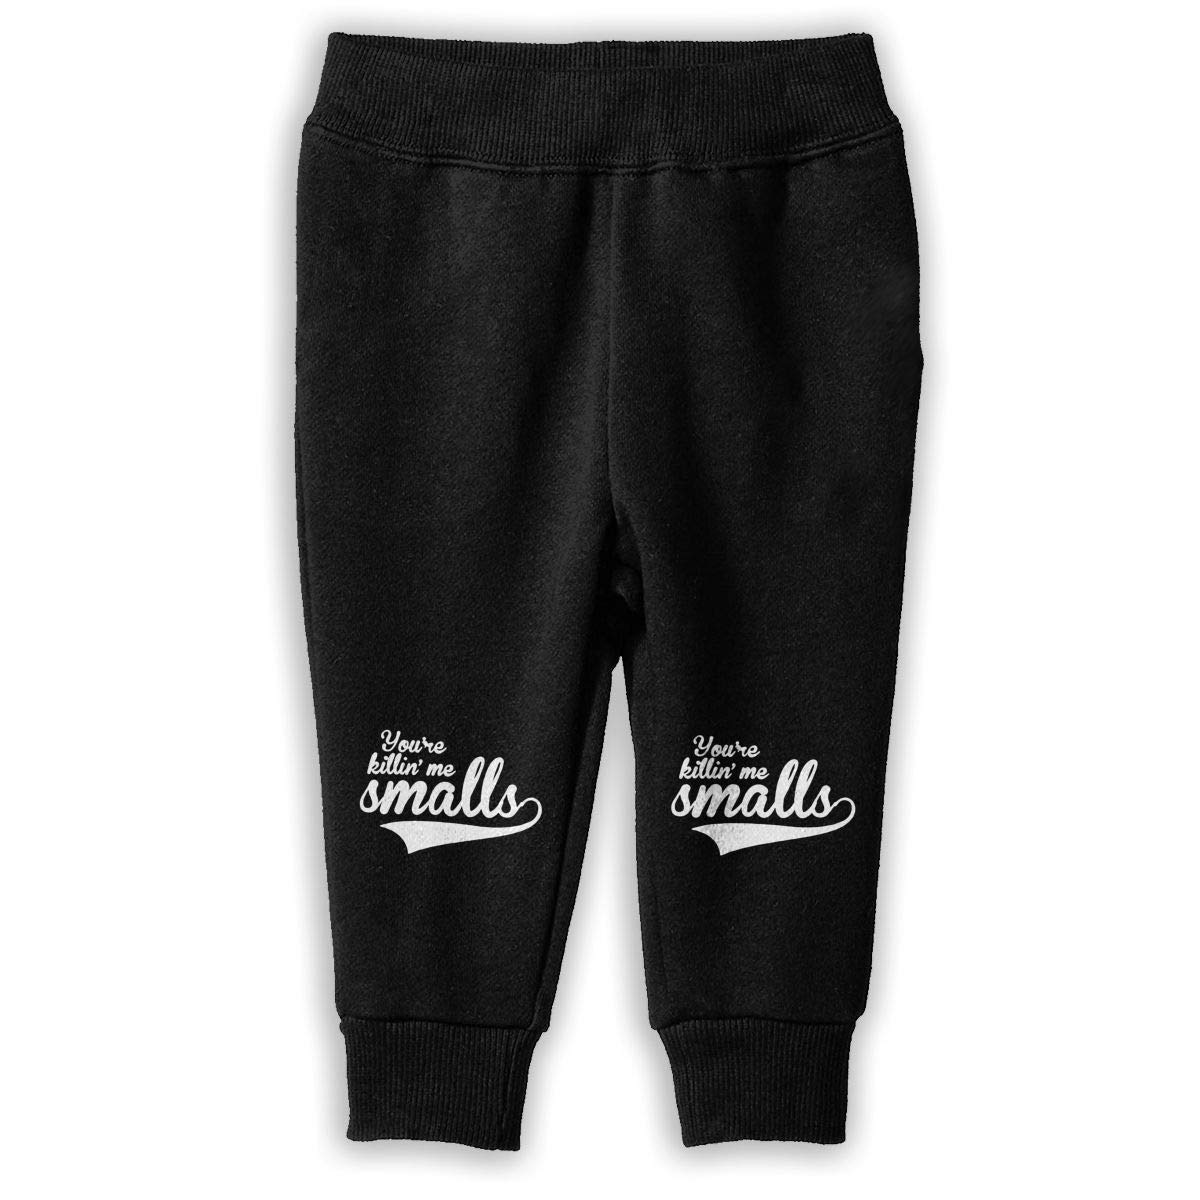 Childrens Boys /& Girls Unisex Sports Sweatpants Printed Youre Killing Me Smalls